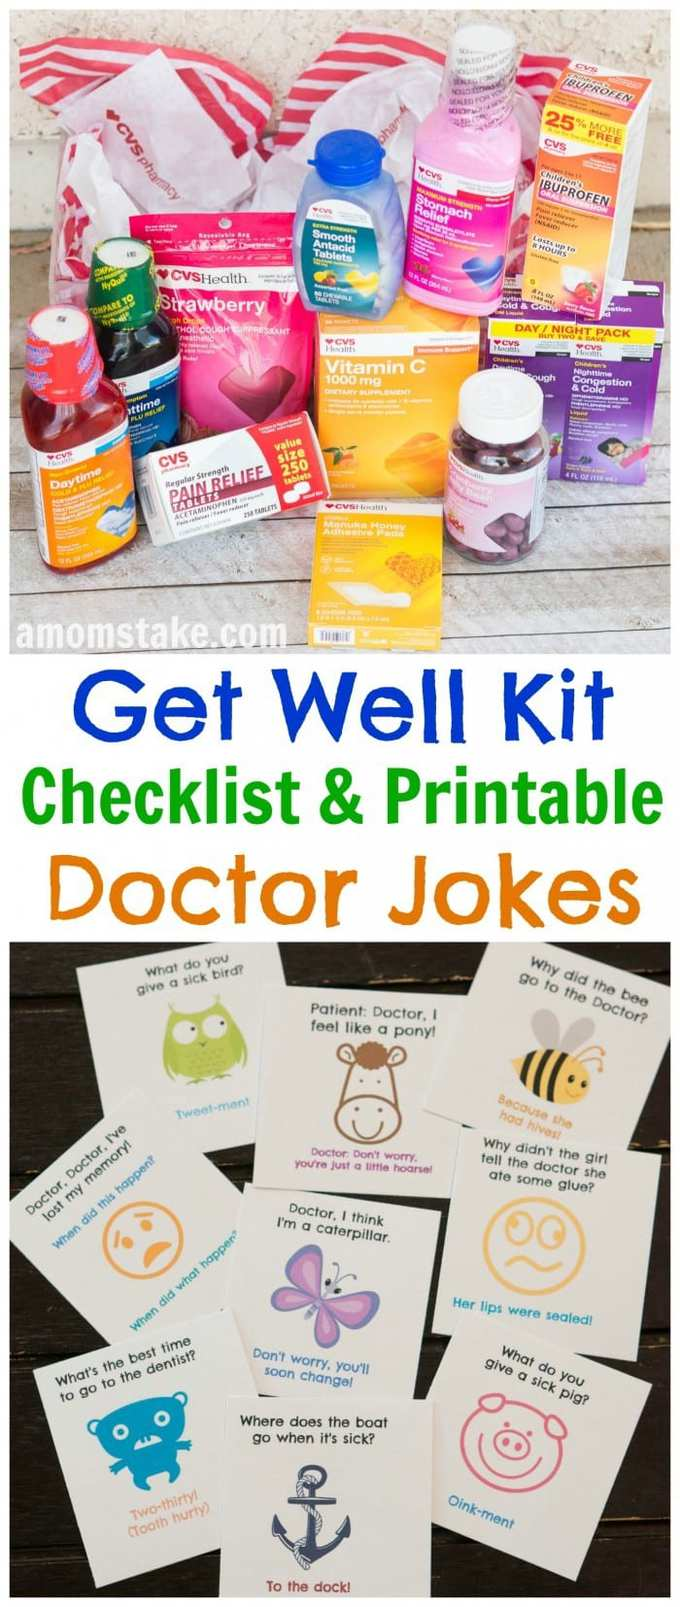 A well stocked medicine cabinet will have you prepared and ready for whatever comes your way through fall and cold and flu season. This list covers all the essentials to keep on hand. Plus, an adorable bonus set of kids doctor jokes to cheer up the family when a bug does hit.